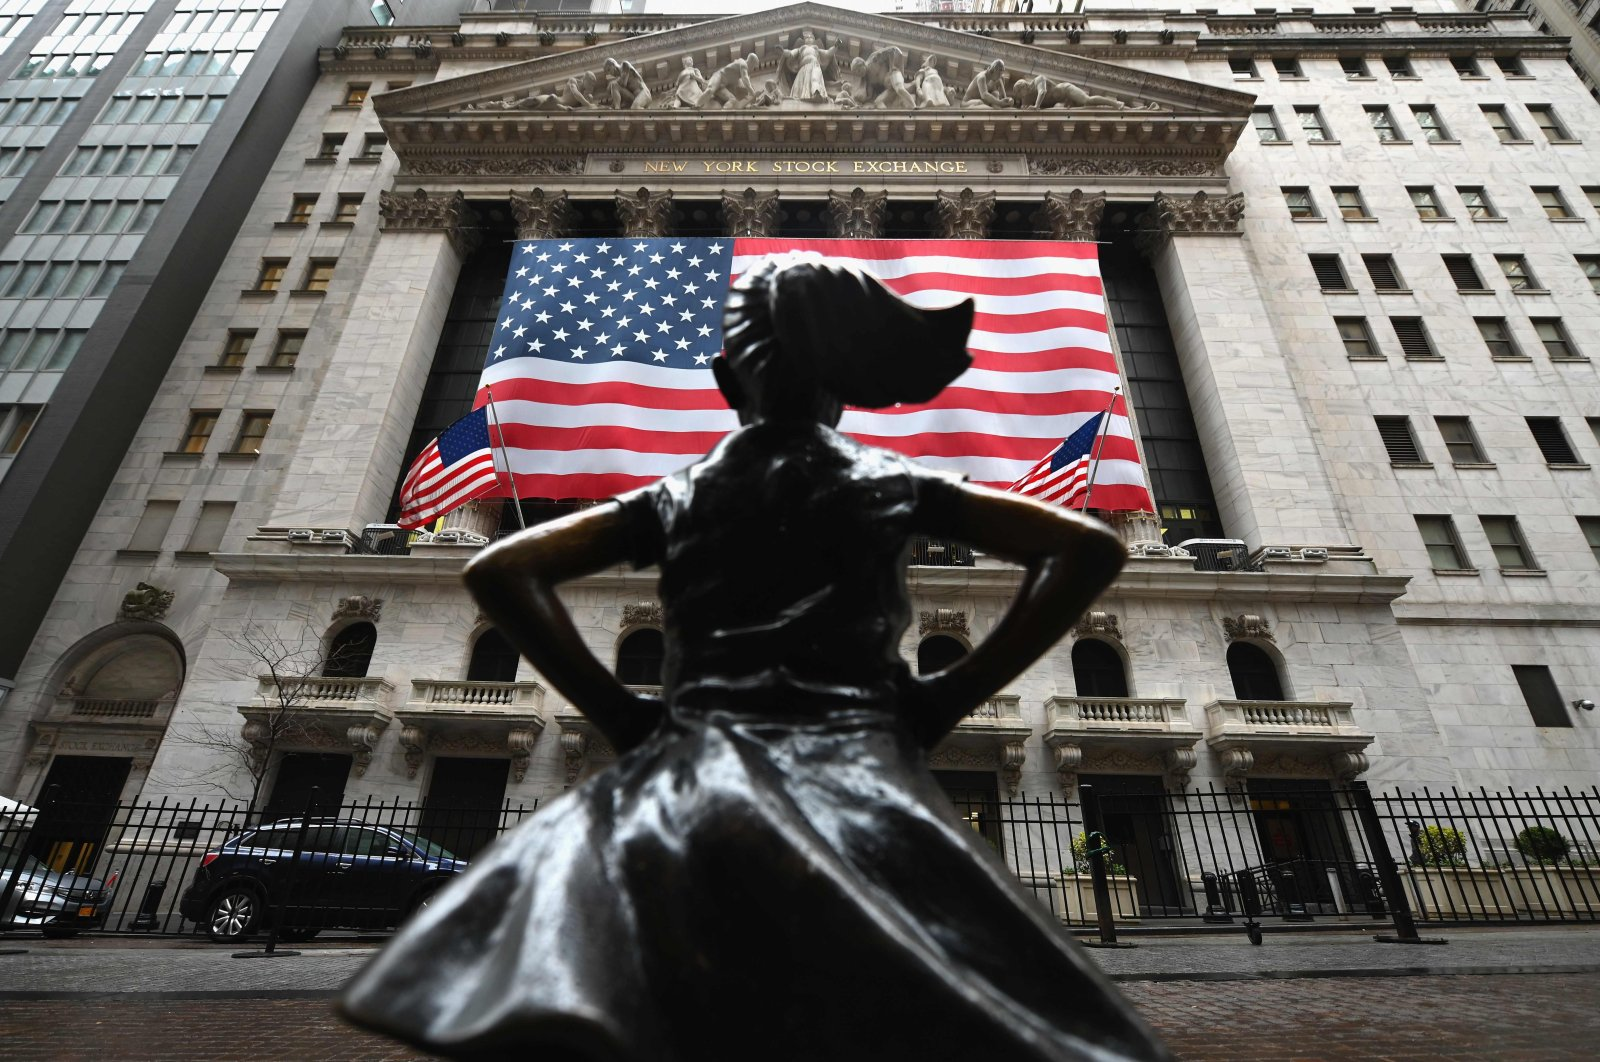 """The Fearless Girl"" statue stands in front of the New York Stock Exchange near Wall Street on Monday, March 23, 2020, New York City, New York. (AFP Photo)"